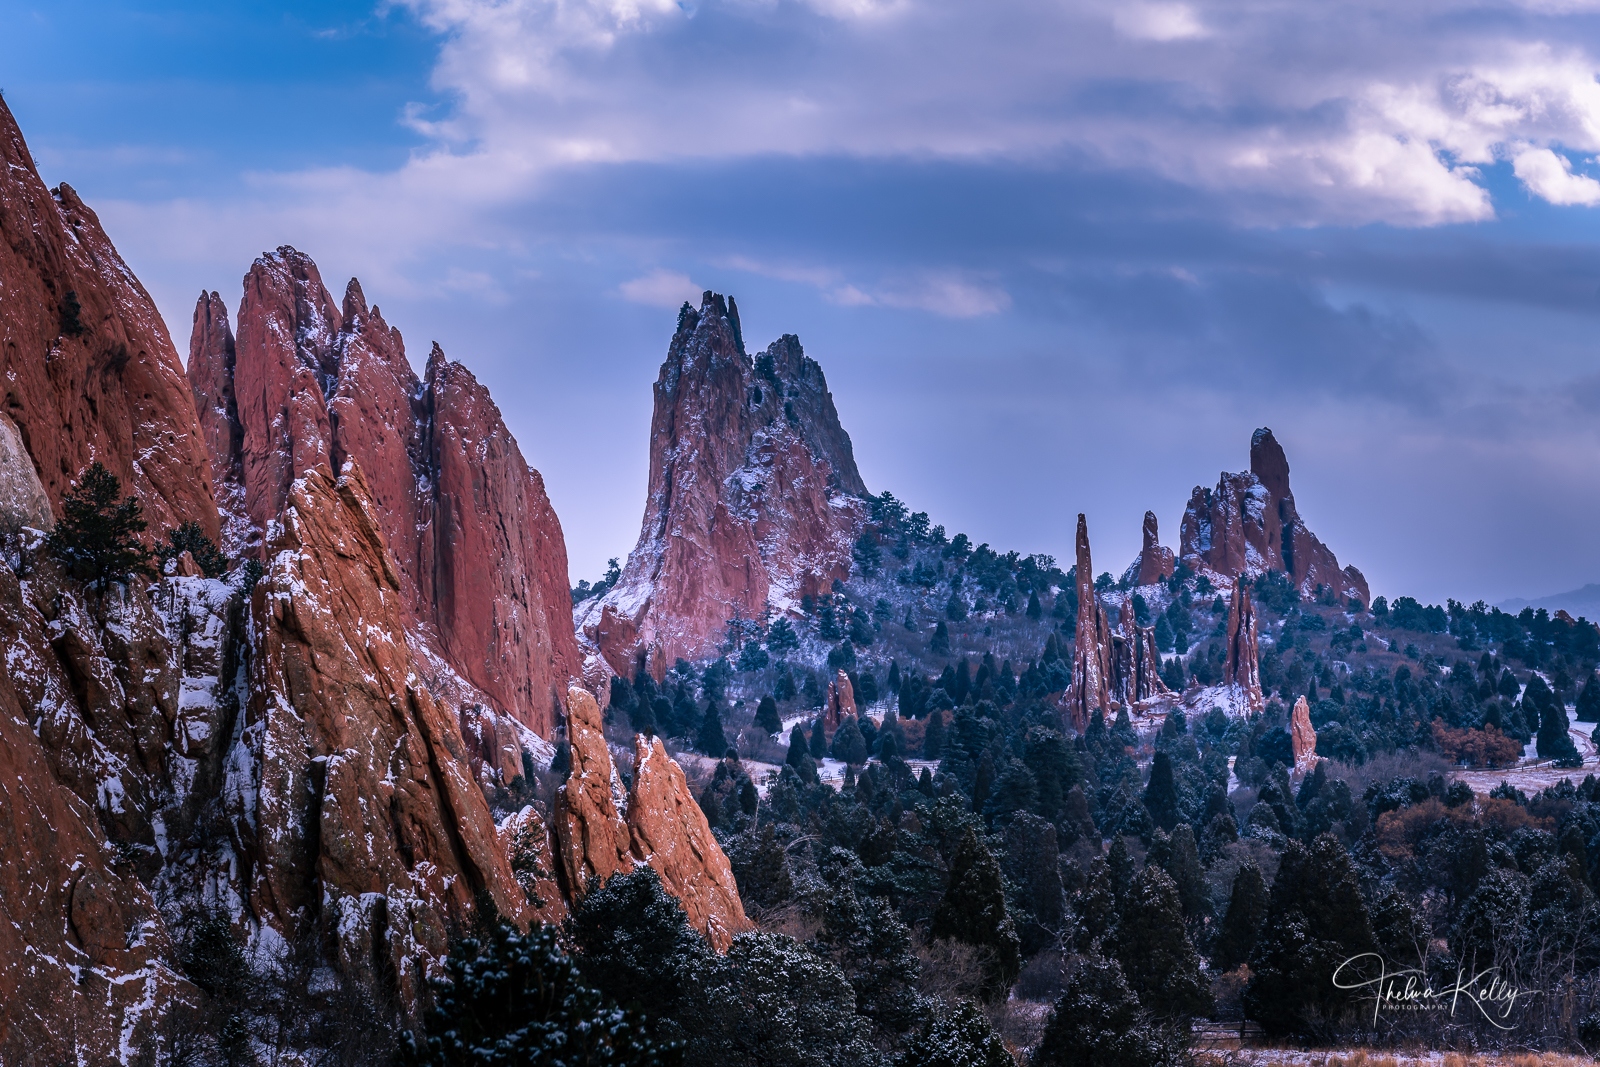 Piercing the sky of its surrounding landscape, the red, pink and white sandstone rock formations were created by intense forces...